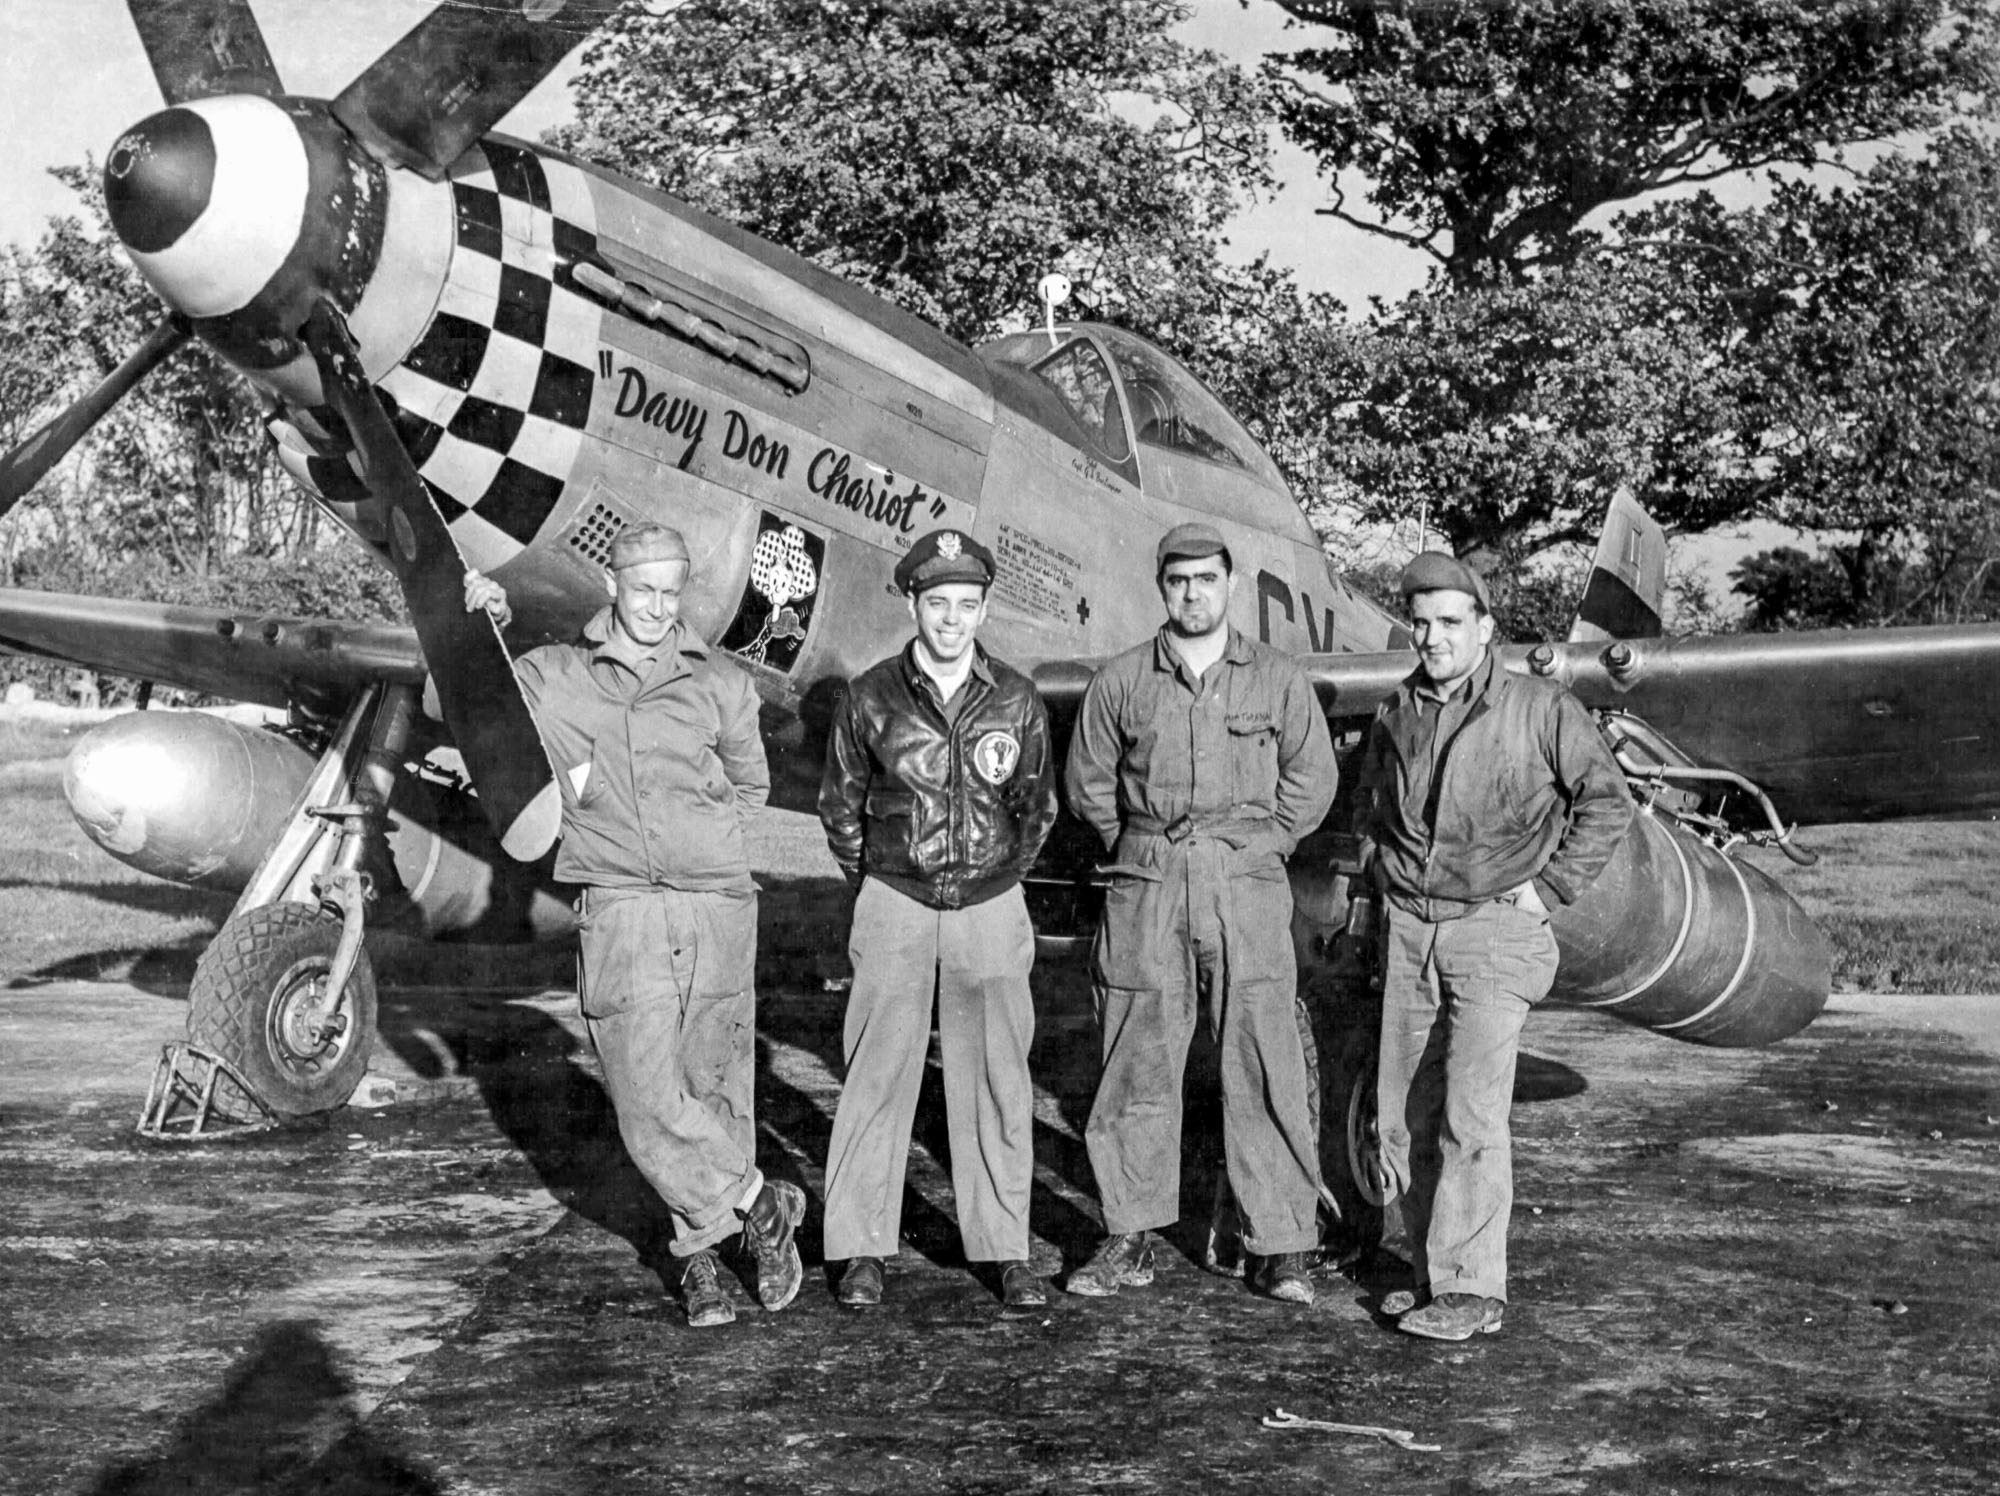 P-51D - Davy Don Chariot - 44-14620